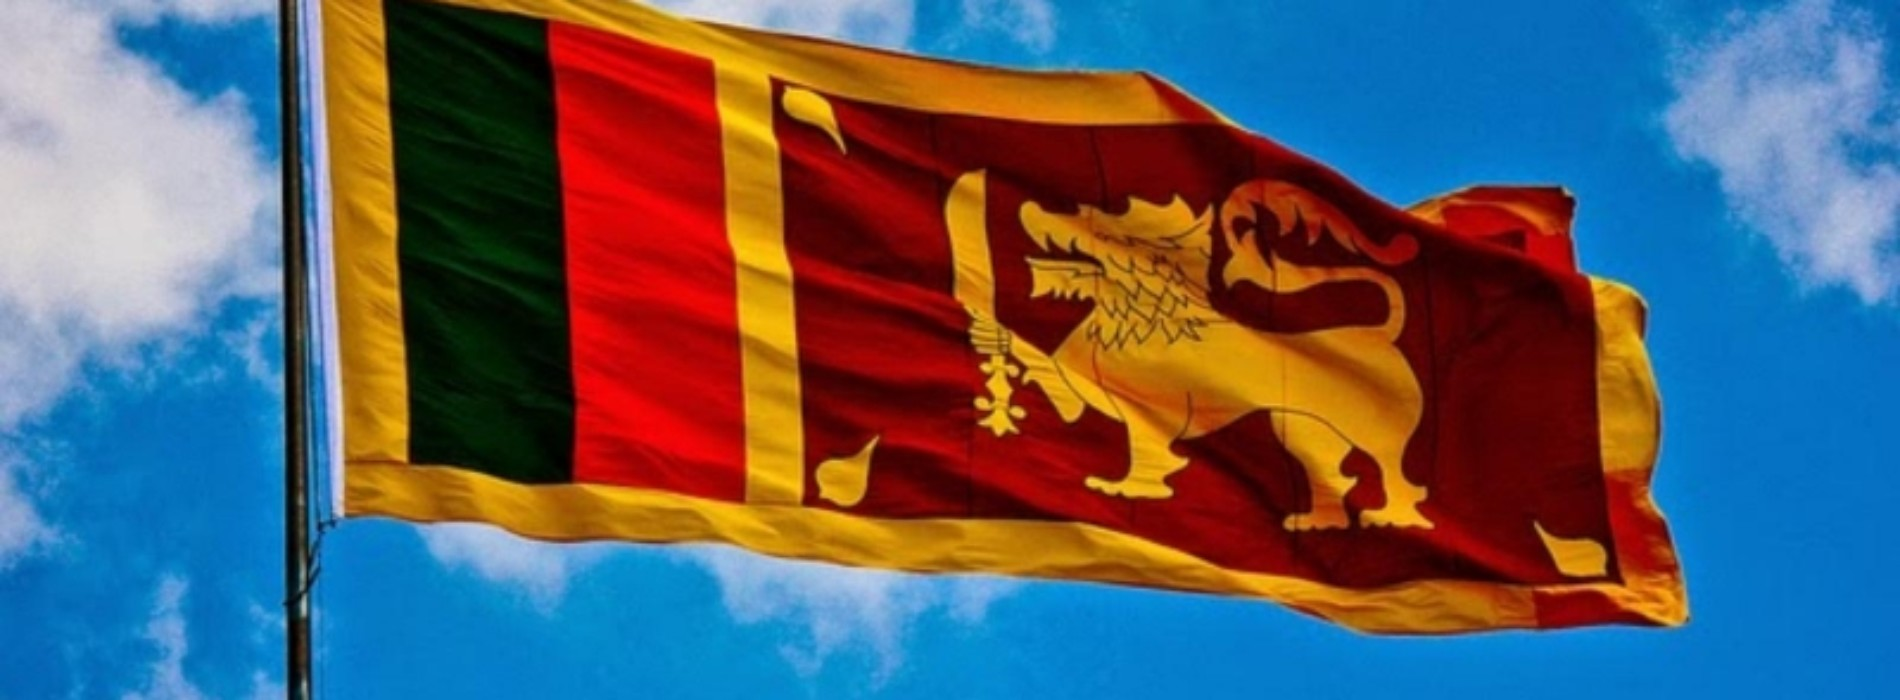 Happy Independence Day Sri Lanka!